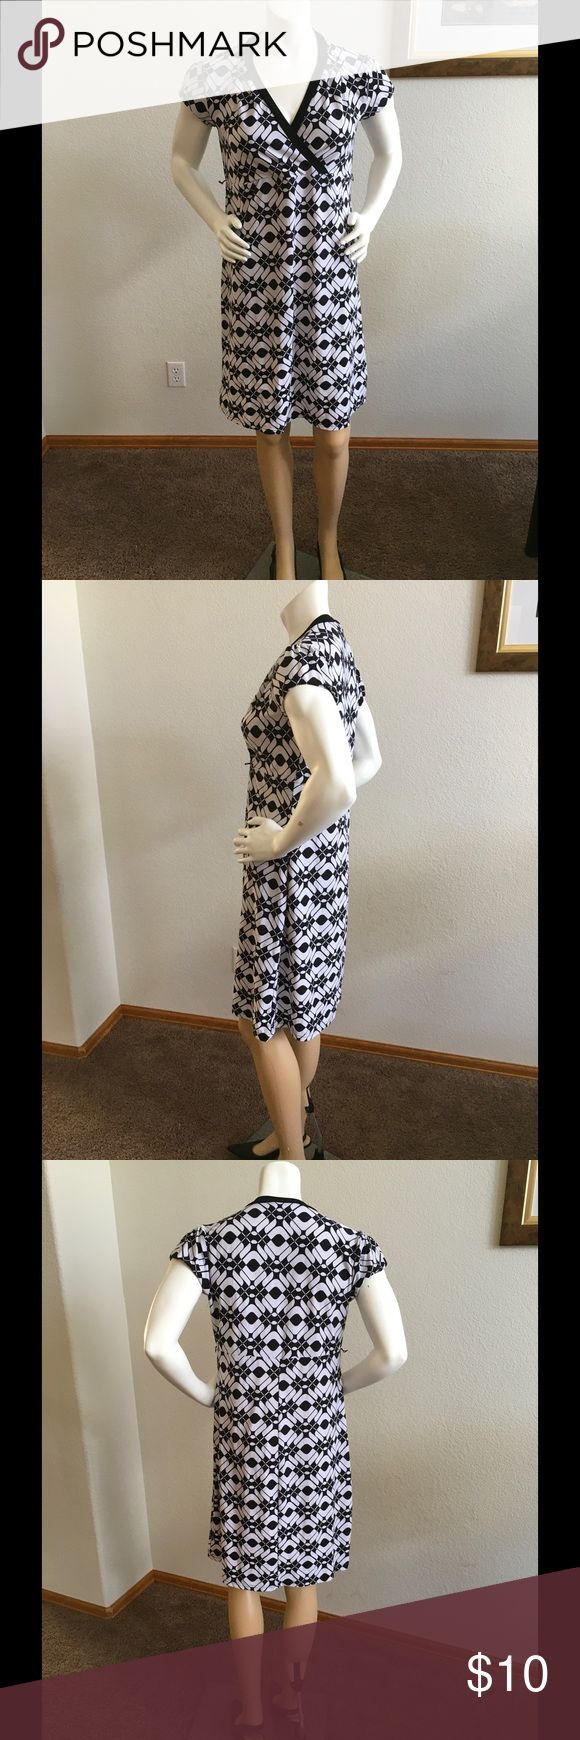 Black and white patterned maternity dress Maternity dress in black and white print. Short sleeve. Cross chest detail. Comfortable stretchy material. From Motherhood. Motherhood Dresses